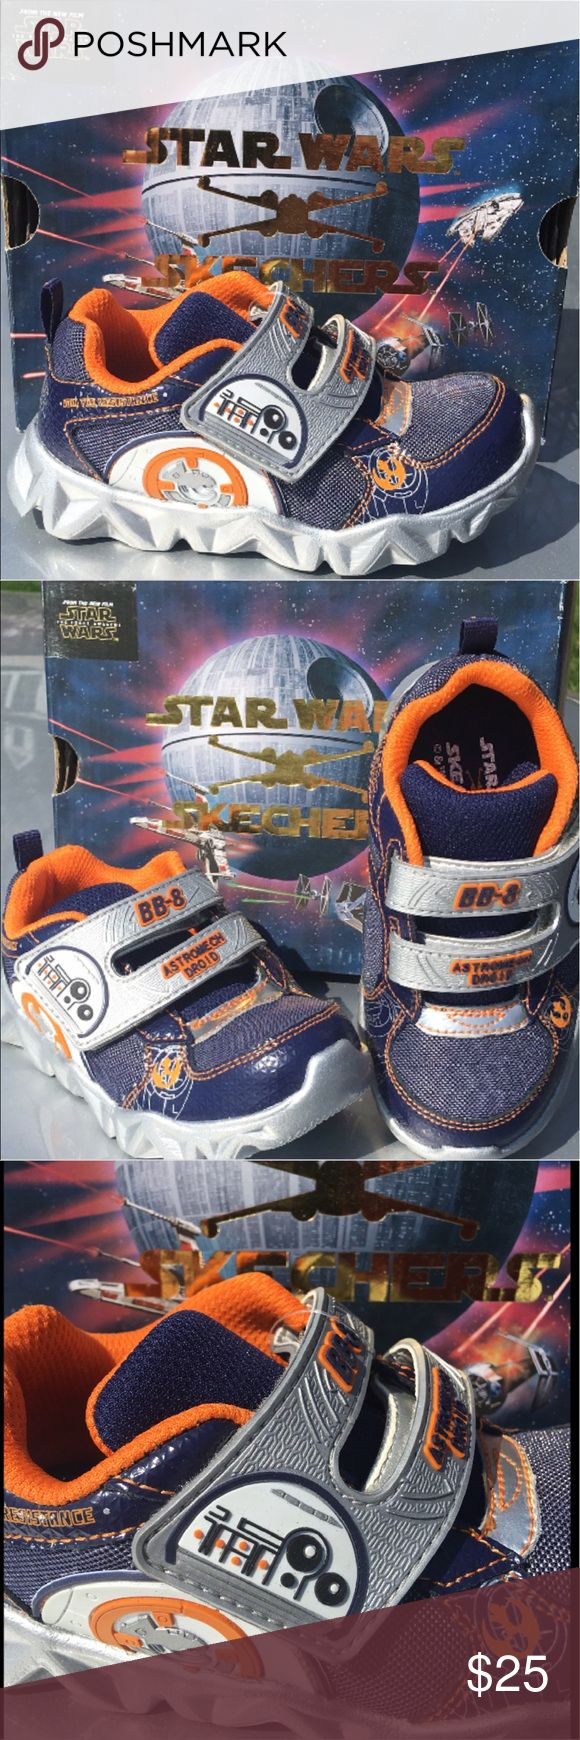 New Star Wars BB8 from Skechers New Star Wars BB8 from Skechers. This is a last pair sale in size 8 they run a little bit small please keep that in mind when purchasing. These are just so cute for your little toddler boy. Skechers Shoes Sneakers